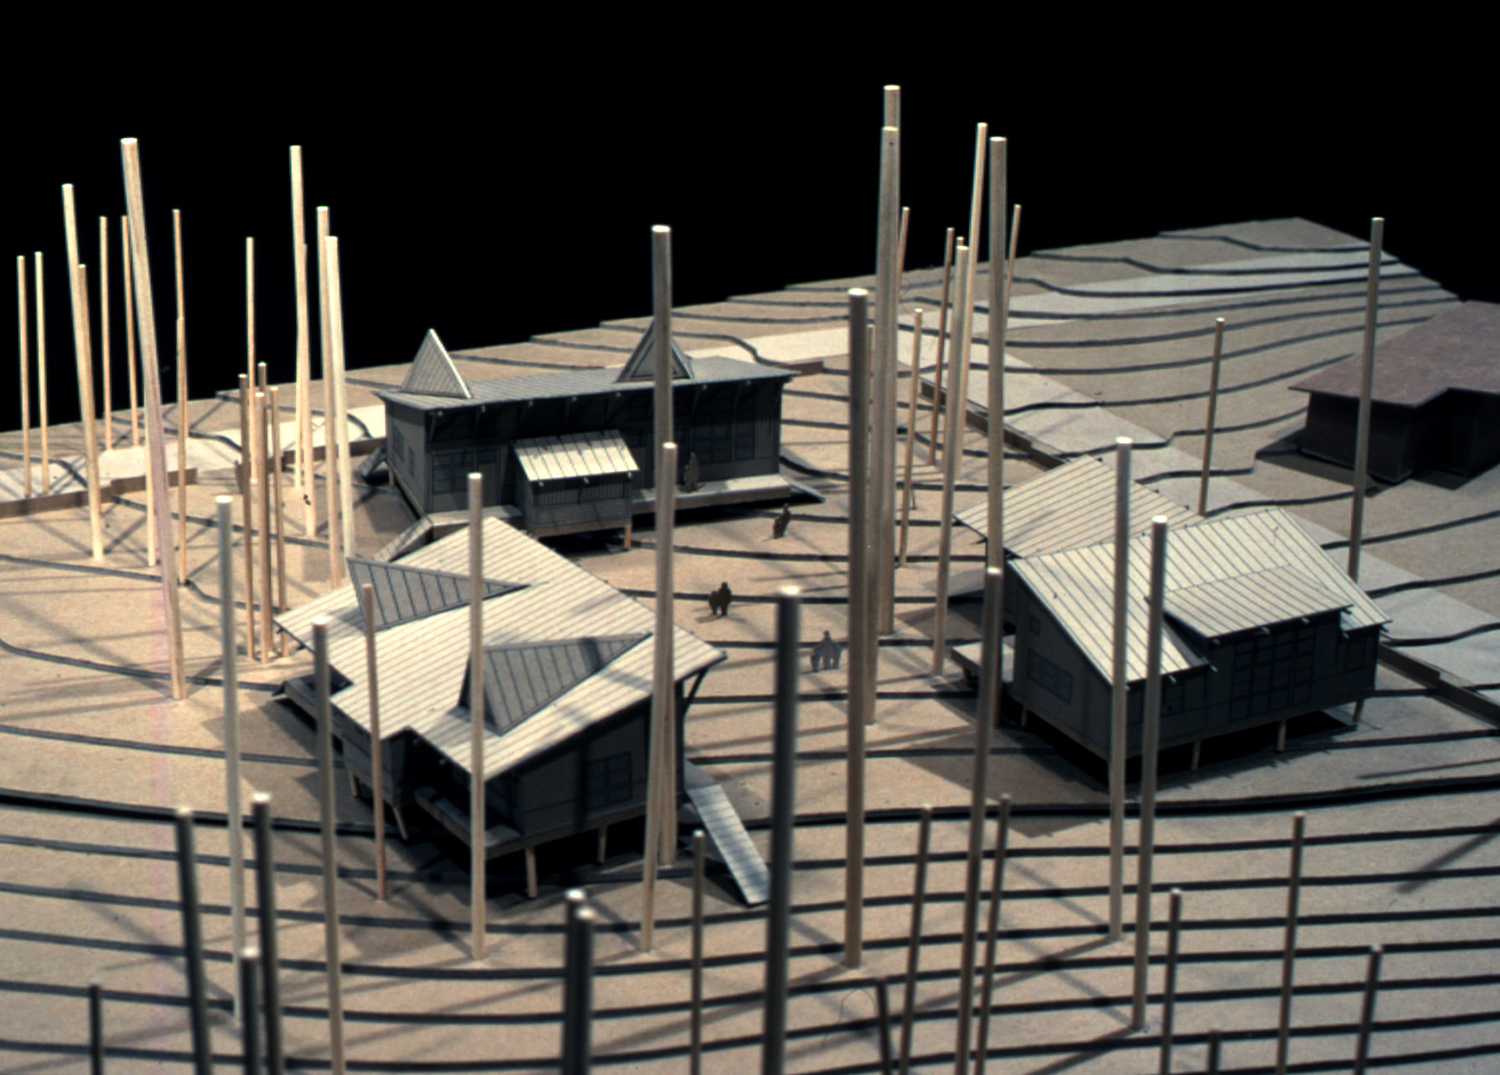 Site model, clockwise from top: Ceramics Building; Nature Building; Painting Building